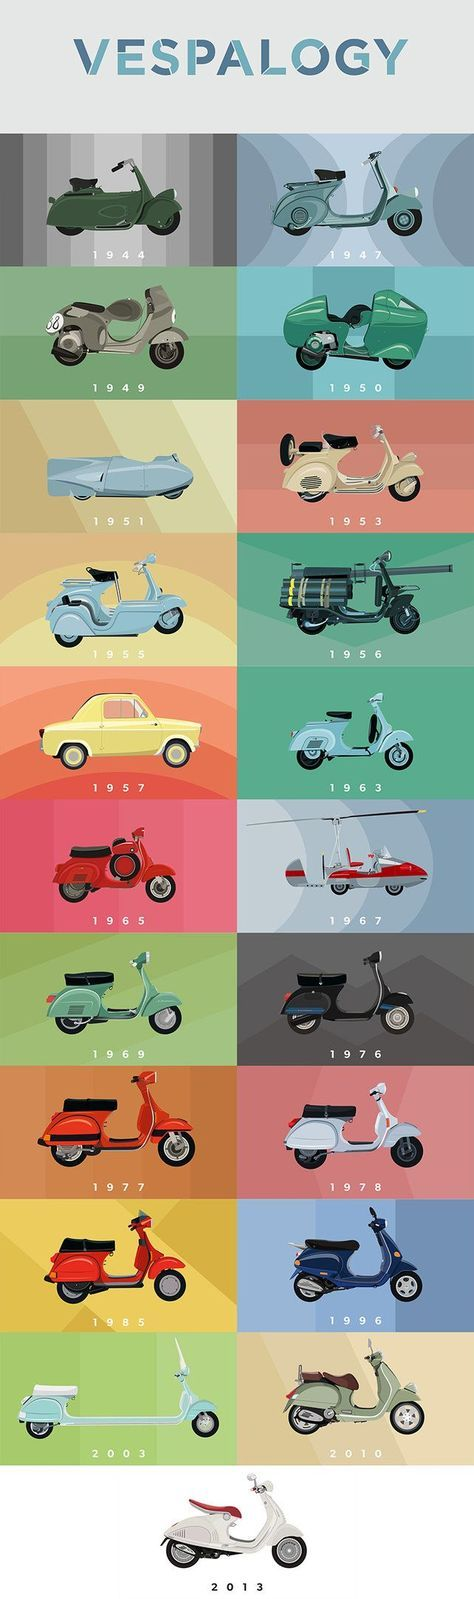 If you're going to #ride, do it in style! #Vespa has mastered style over the years, as this fun infographic demonstrates. This month we've got amazing sales on our scooters, so come in and see us. #scooterlove #Vespa